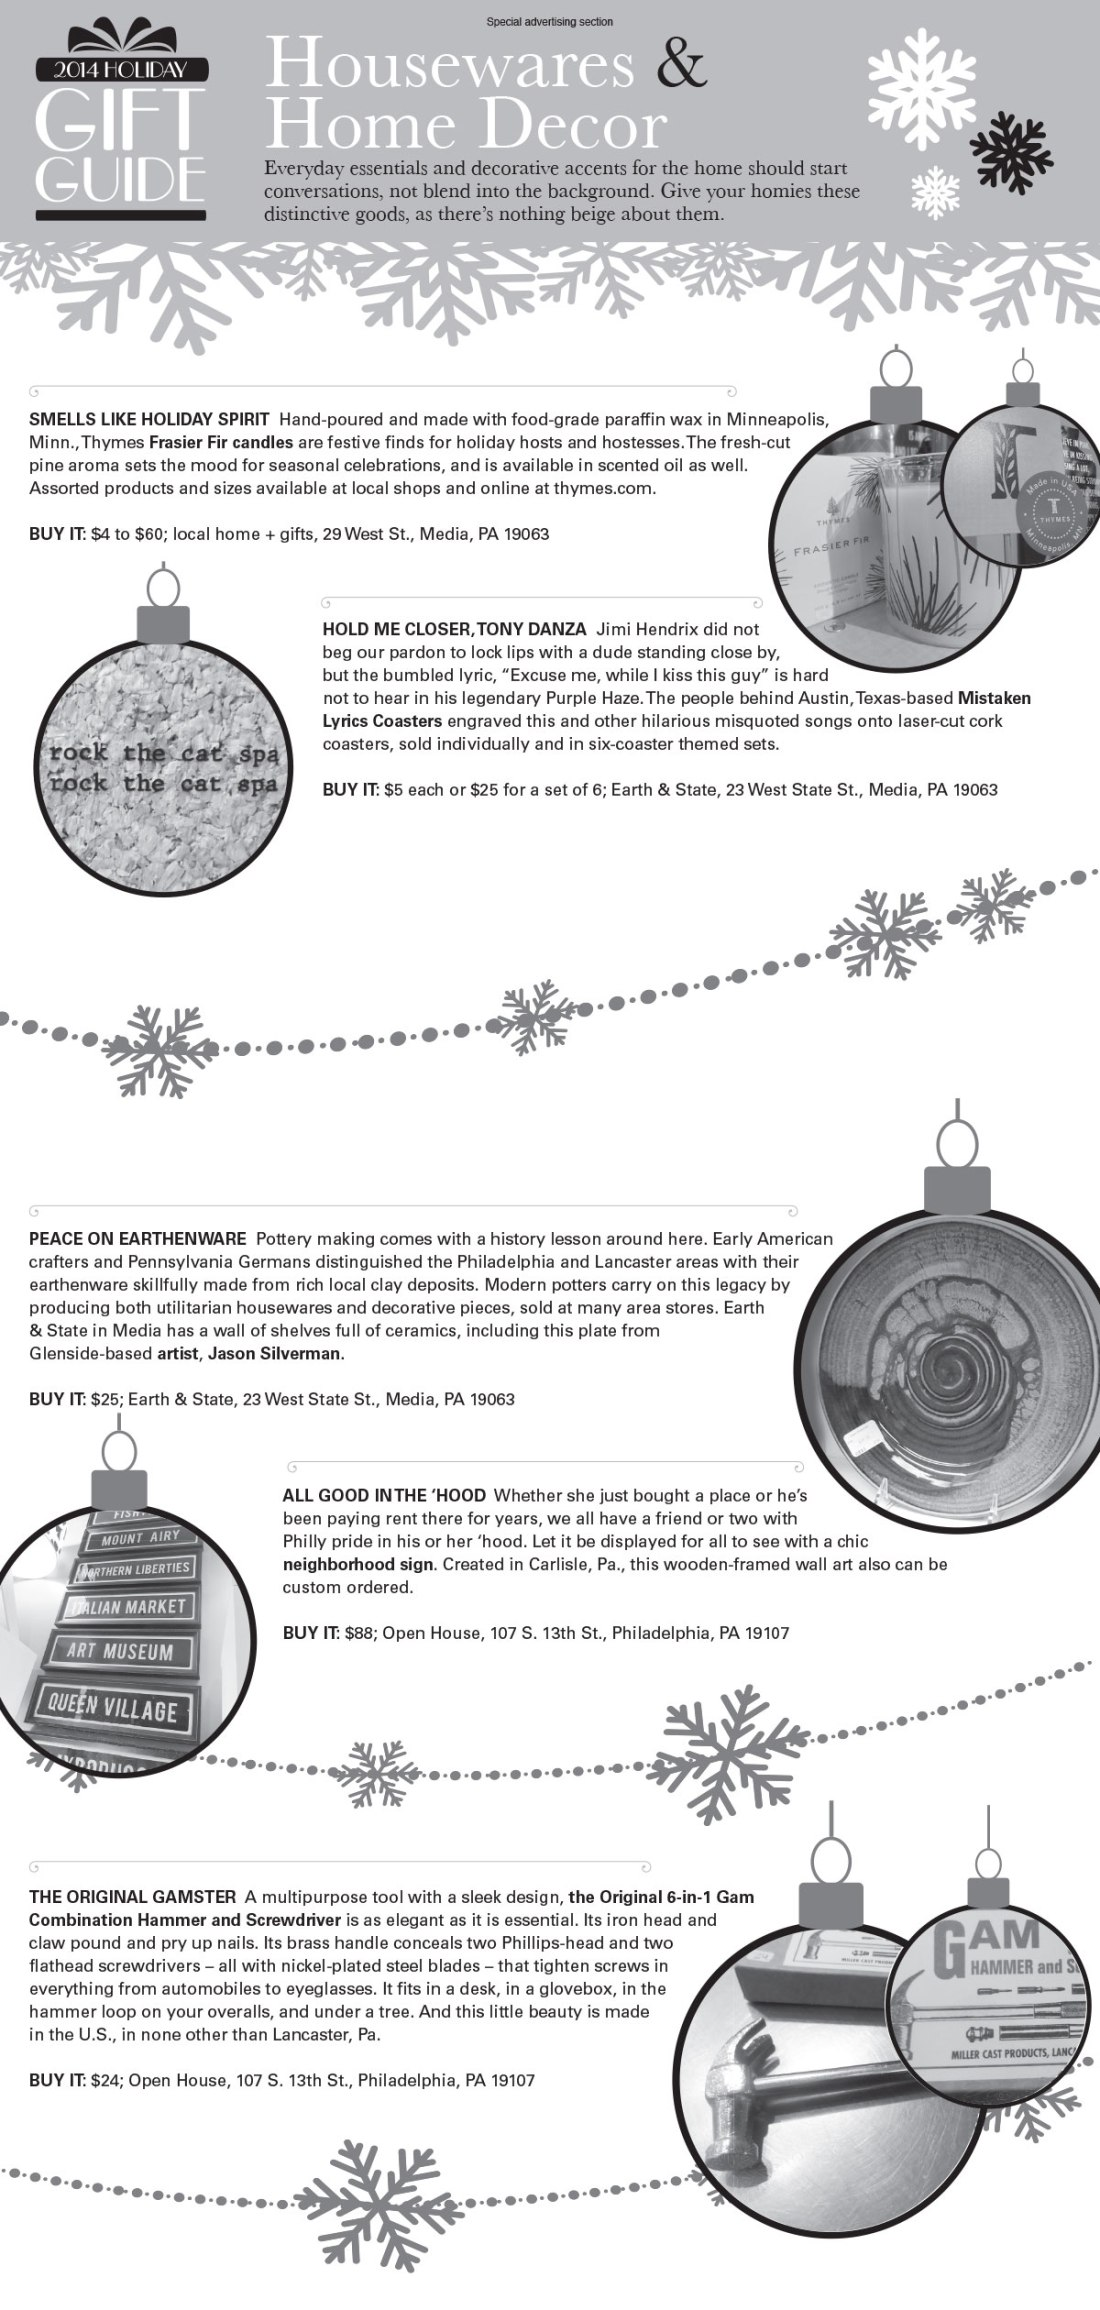 gift-guide_page-4